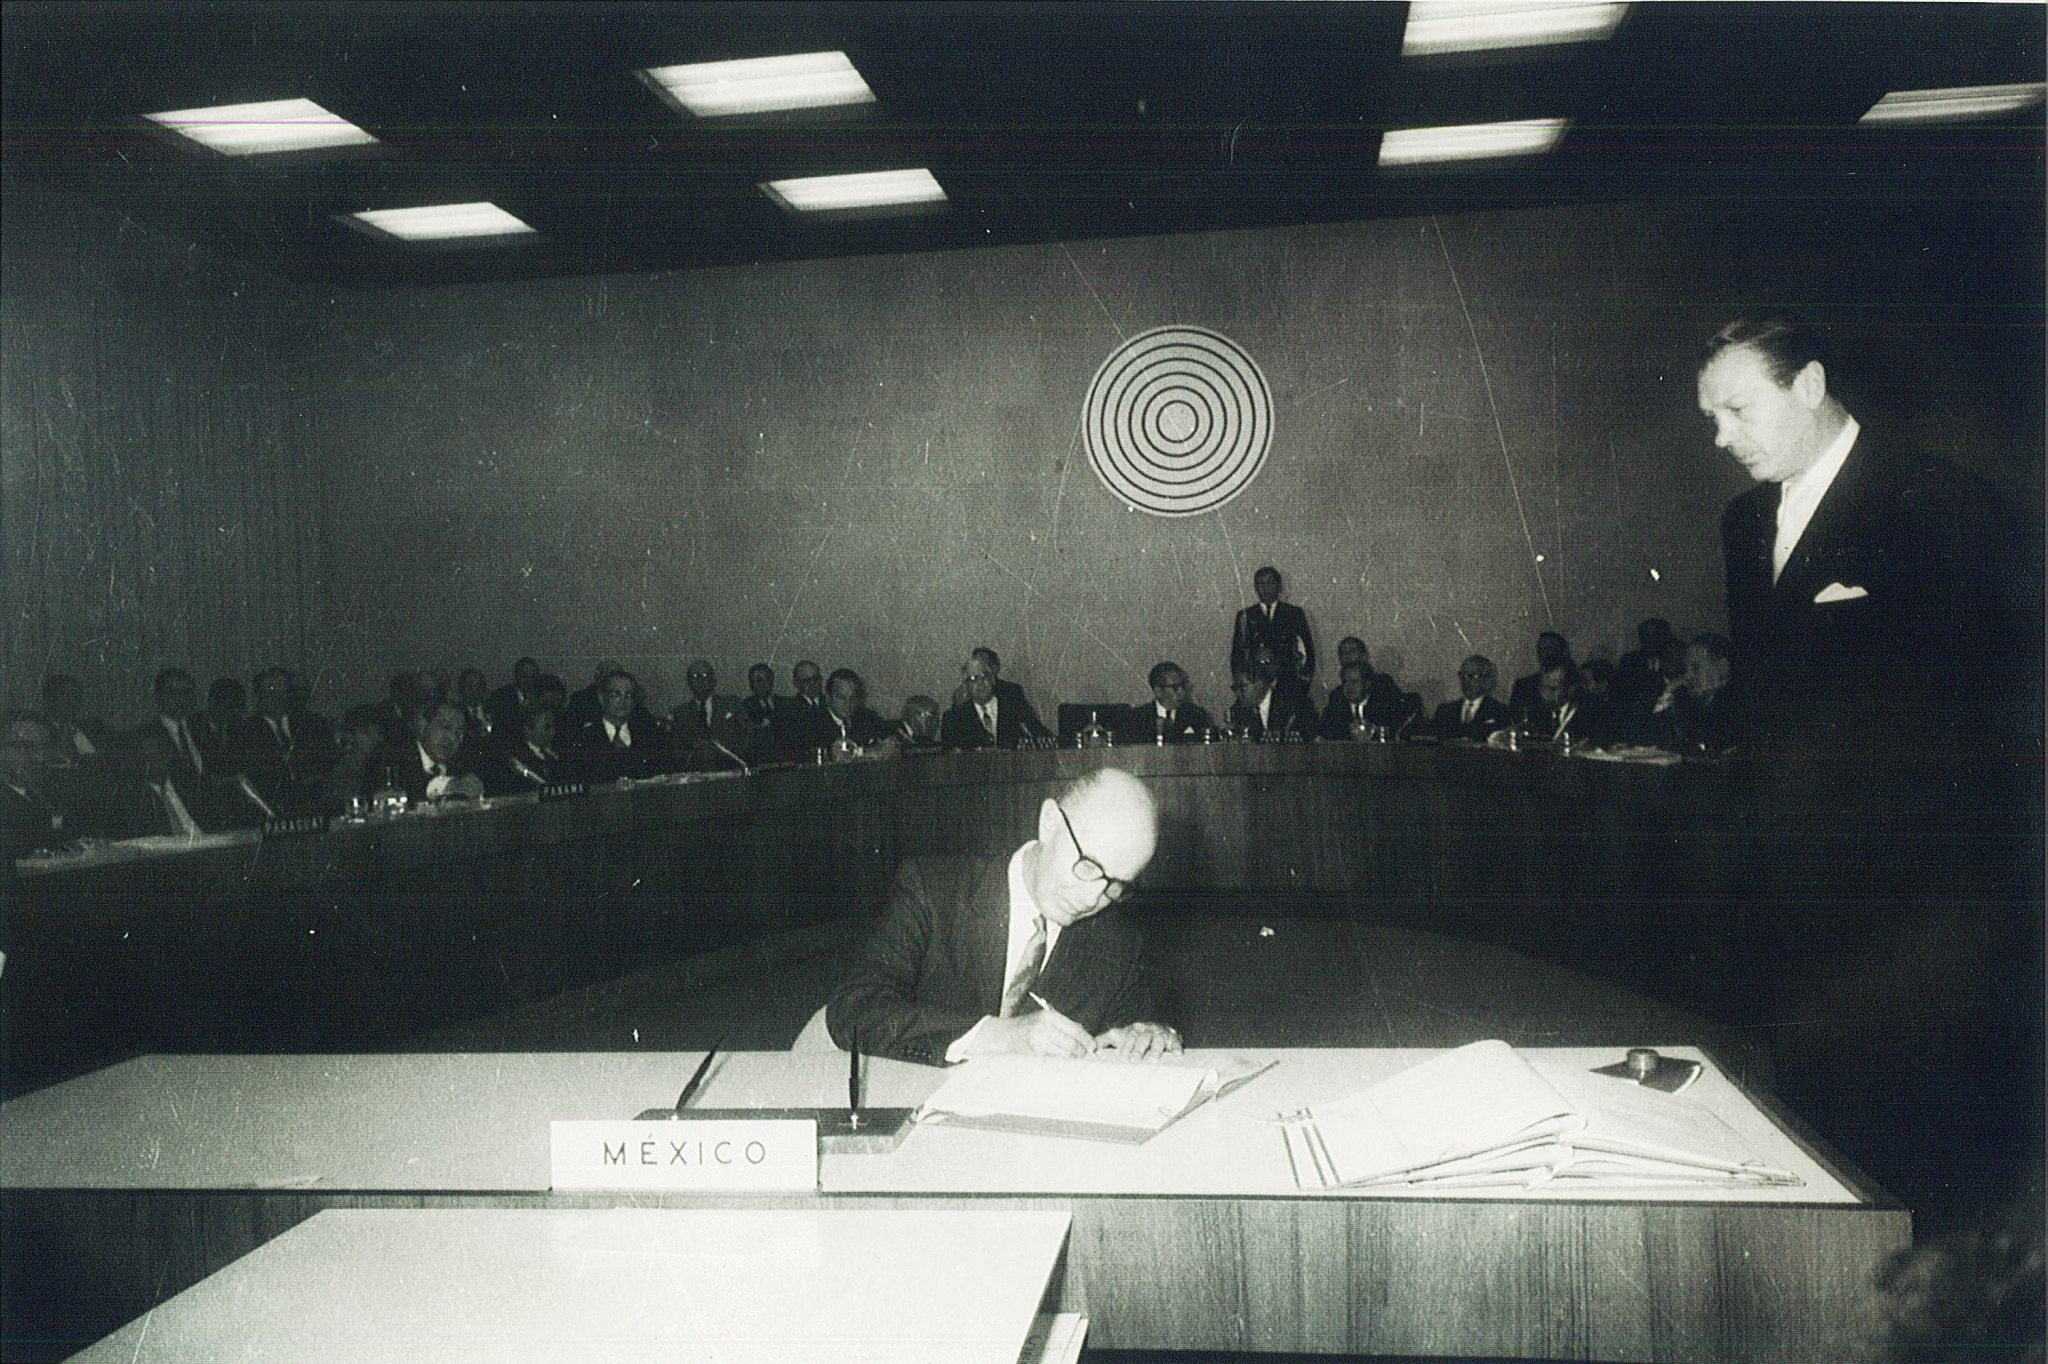 Mexico signs the Treaty of Tlatelolco in 1967.